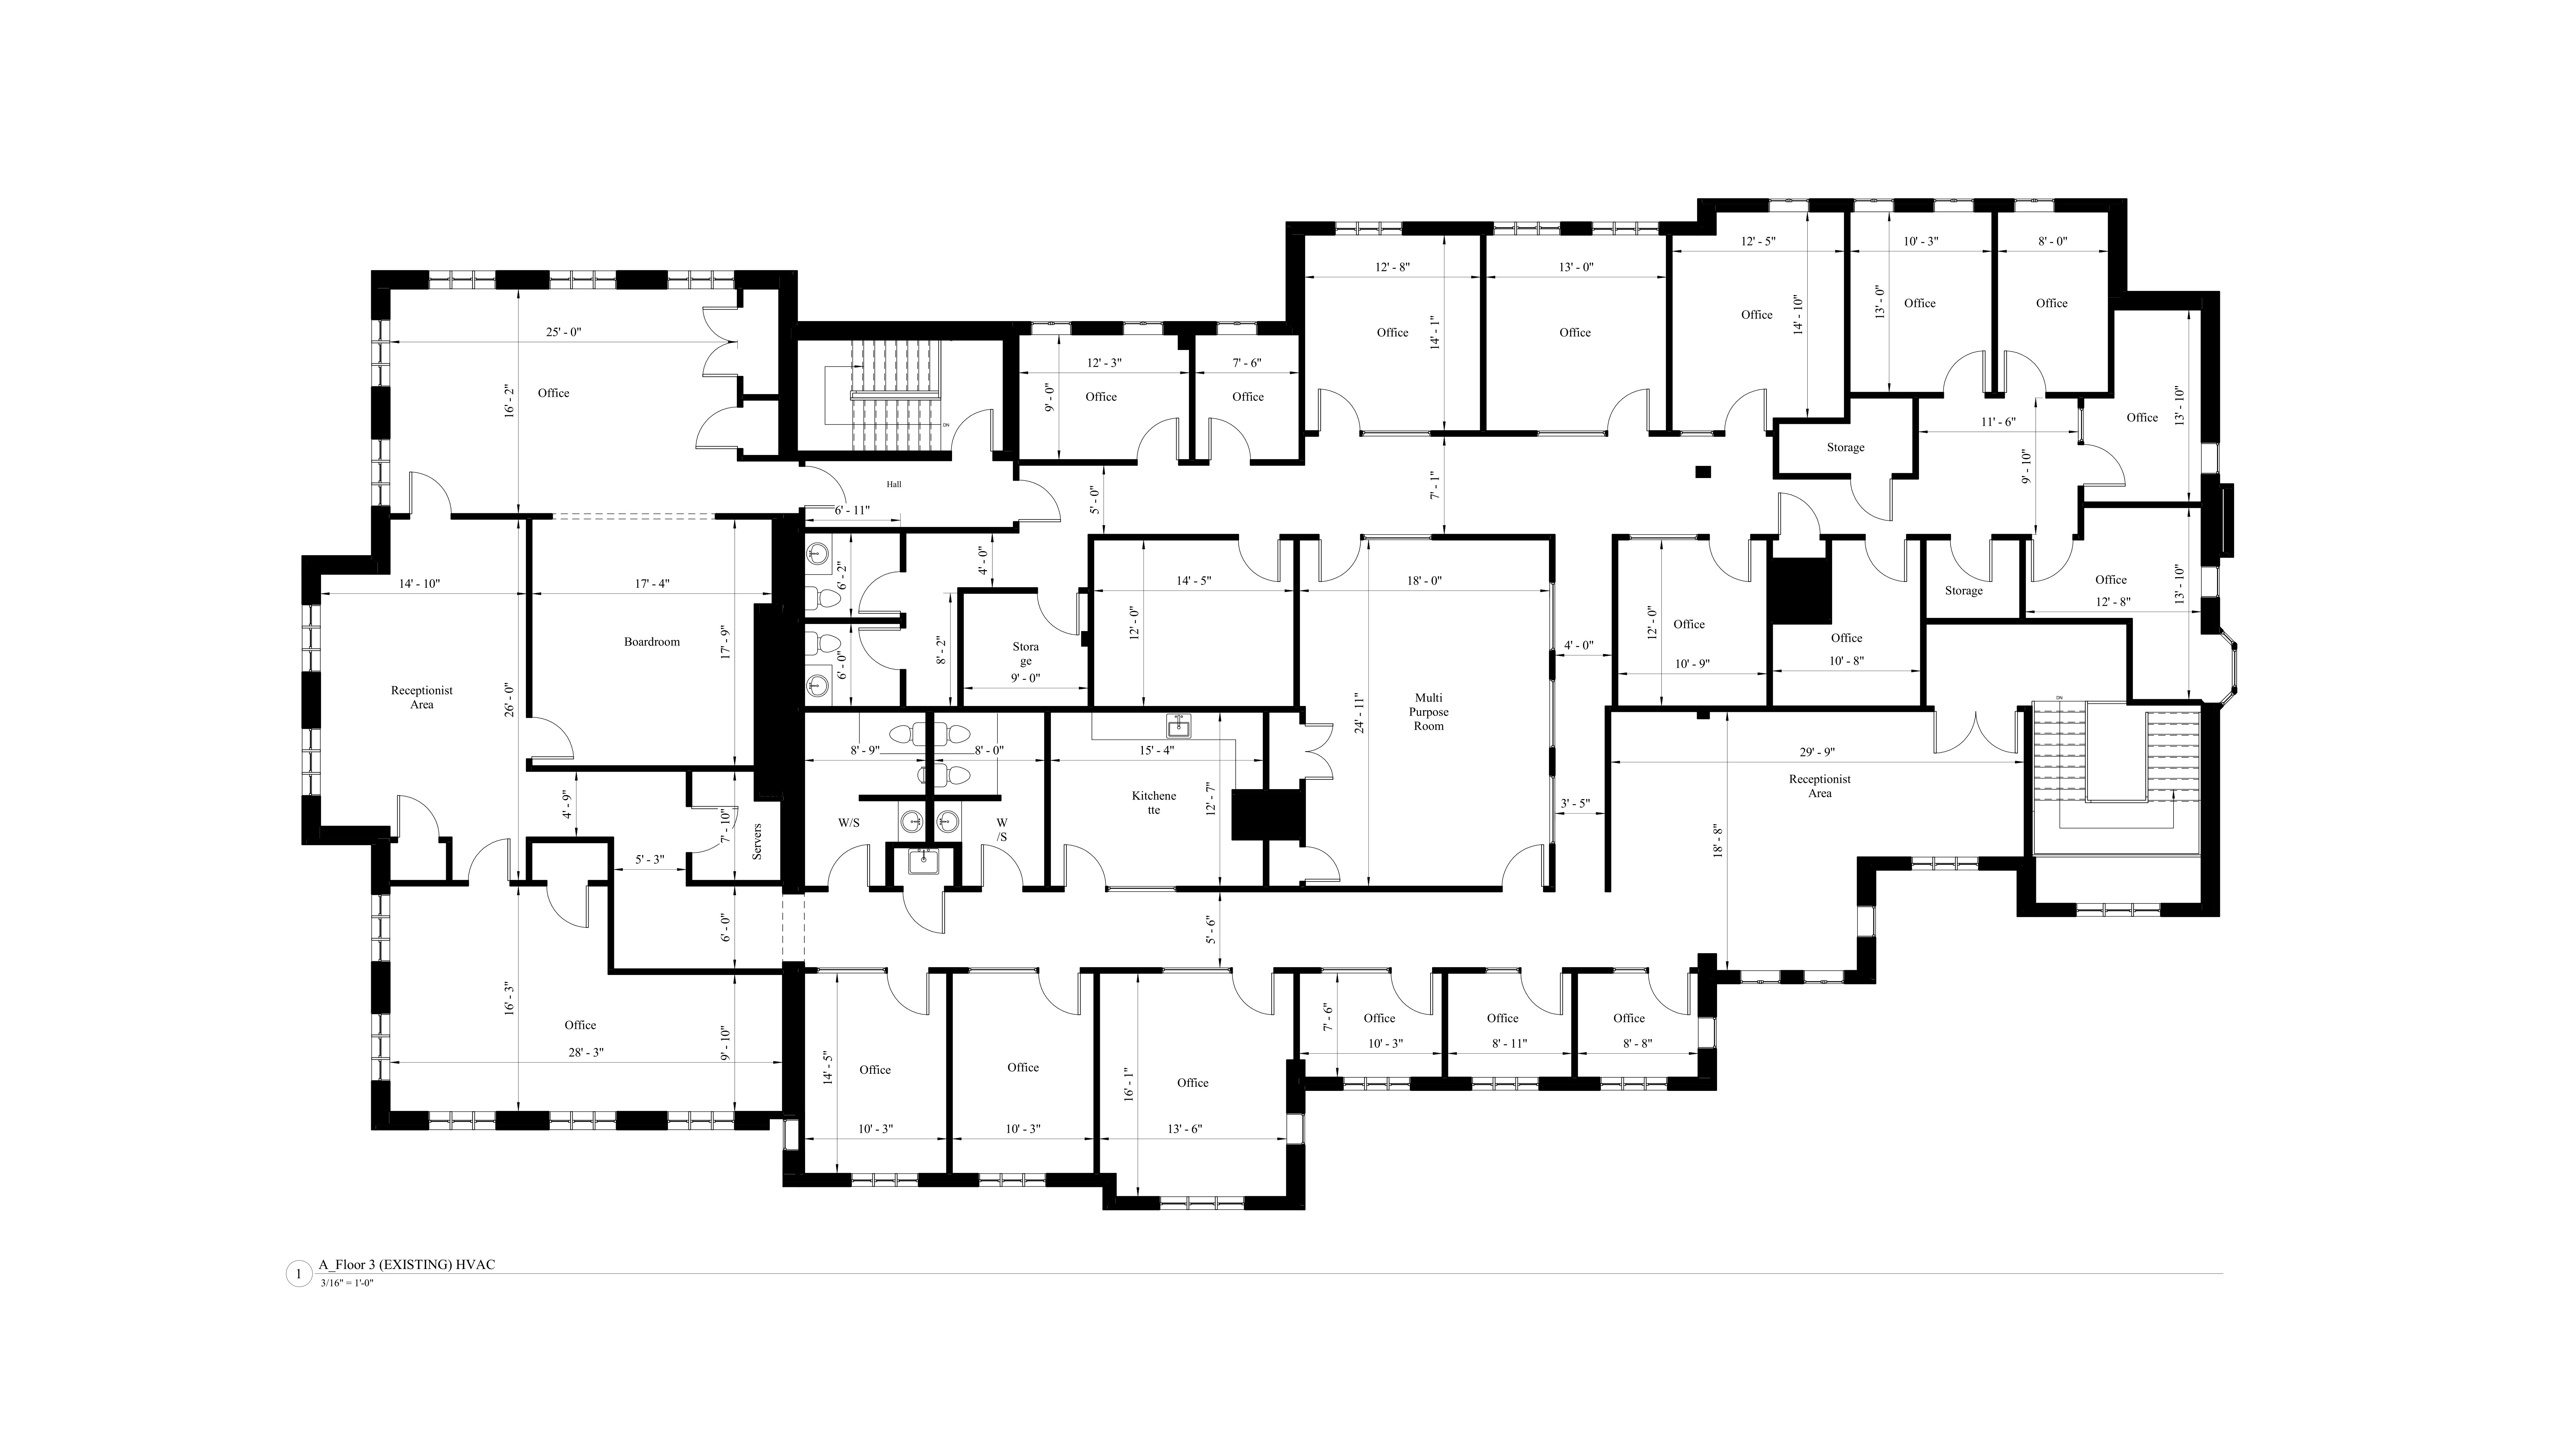 AutoCad drawing of the existing floor plan model for the third level of the commercial building.